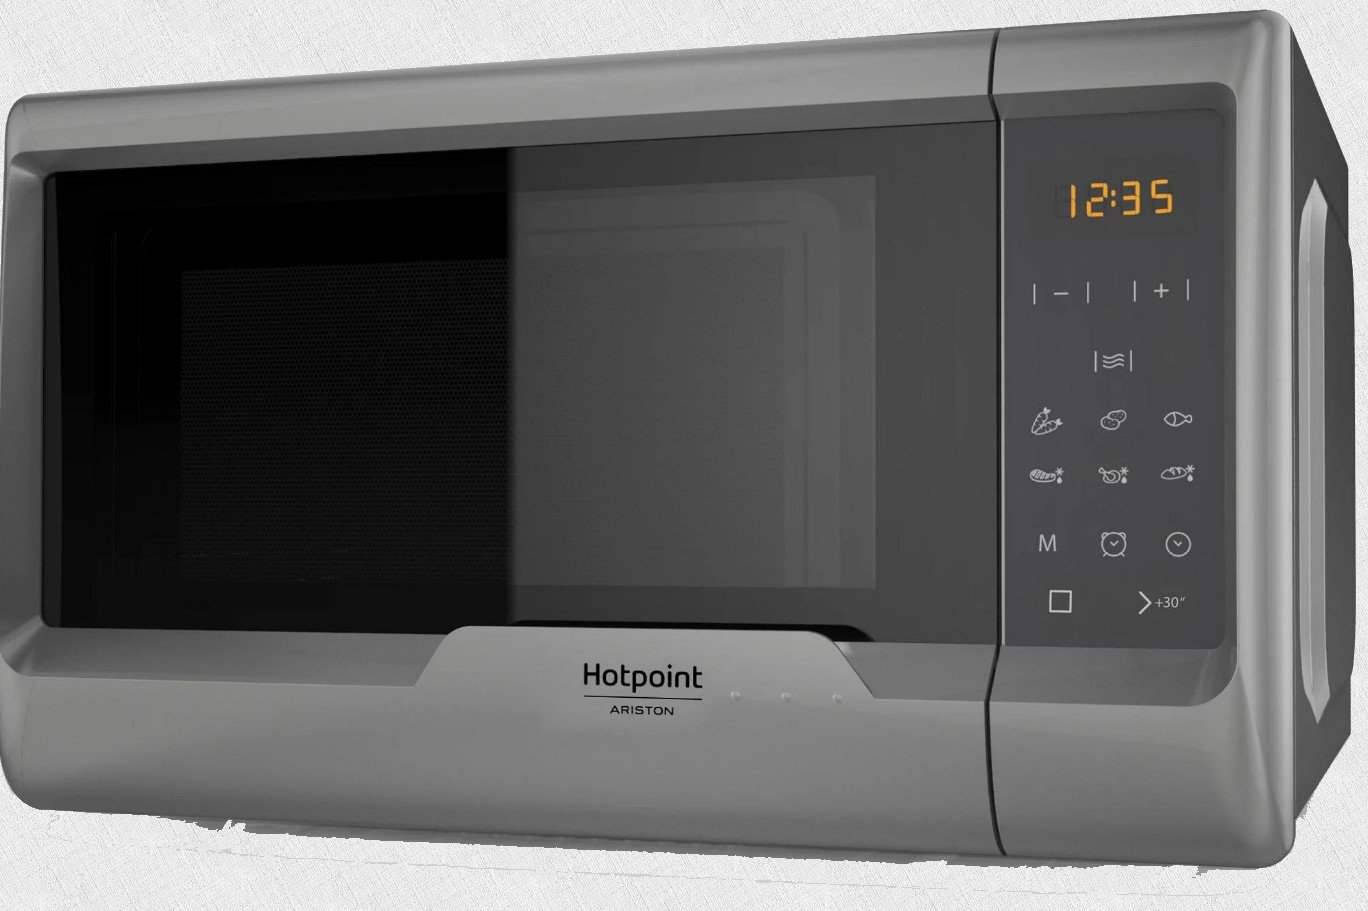 Hotpoint-Ariston MWHA 2031 MS2 советы профессионалов